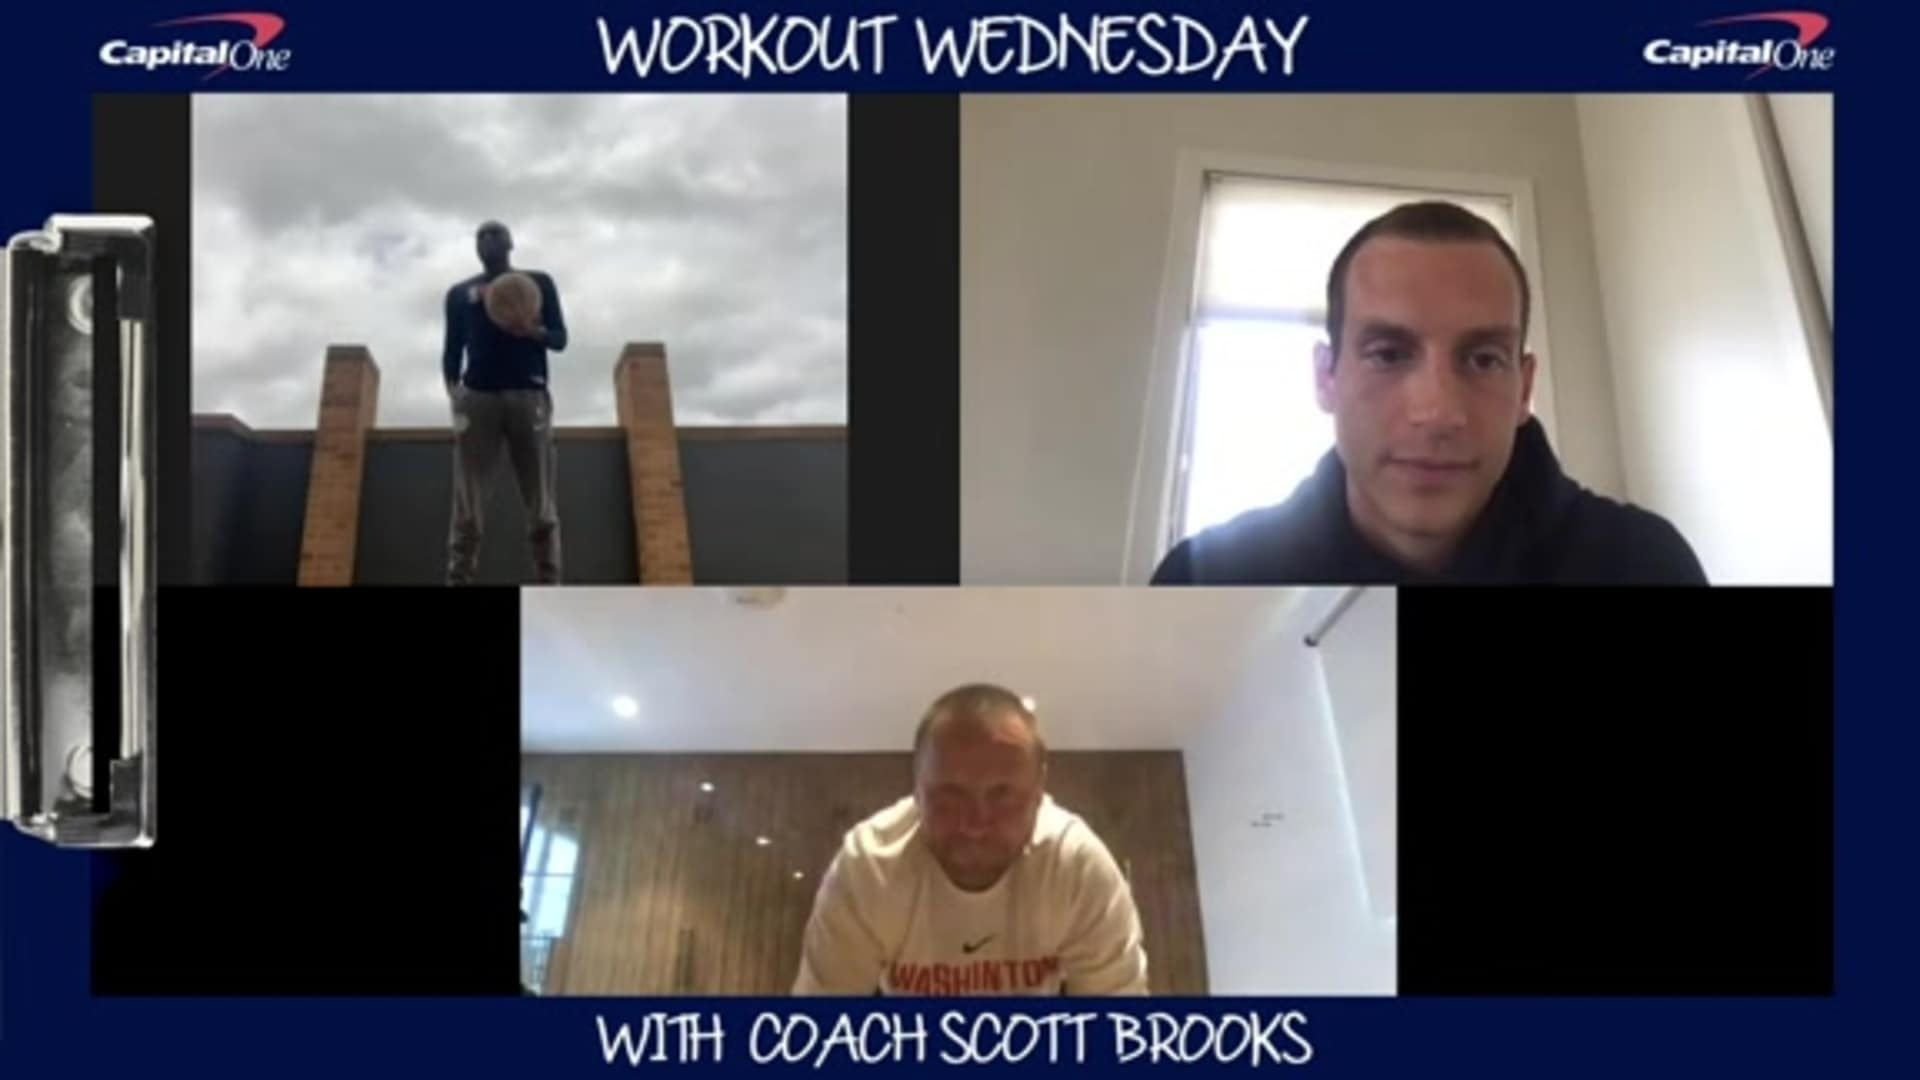 Coach Scott Brooks' Workout Wednesdays presented by Capital One - 5/20/20